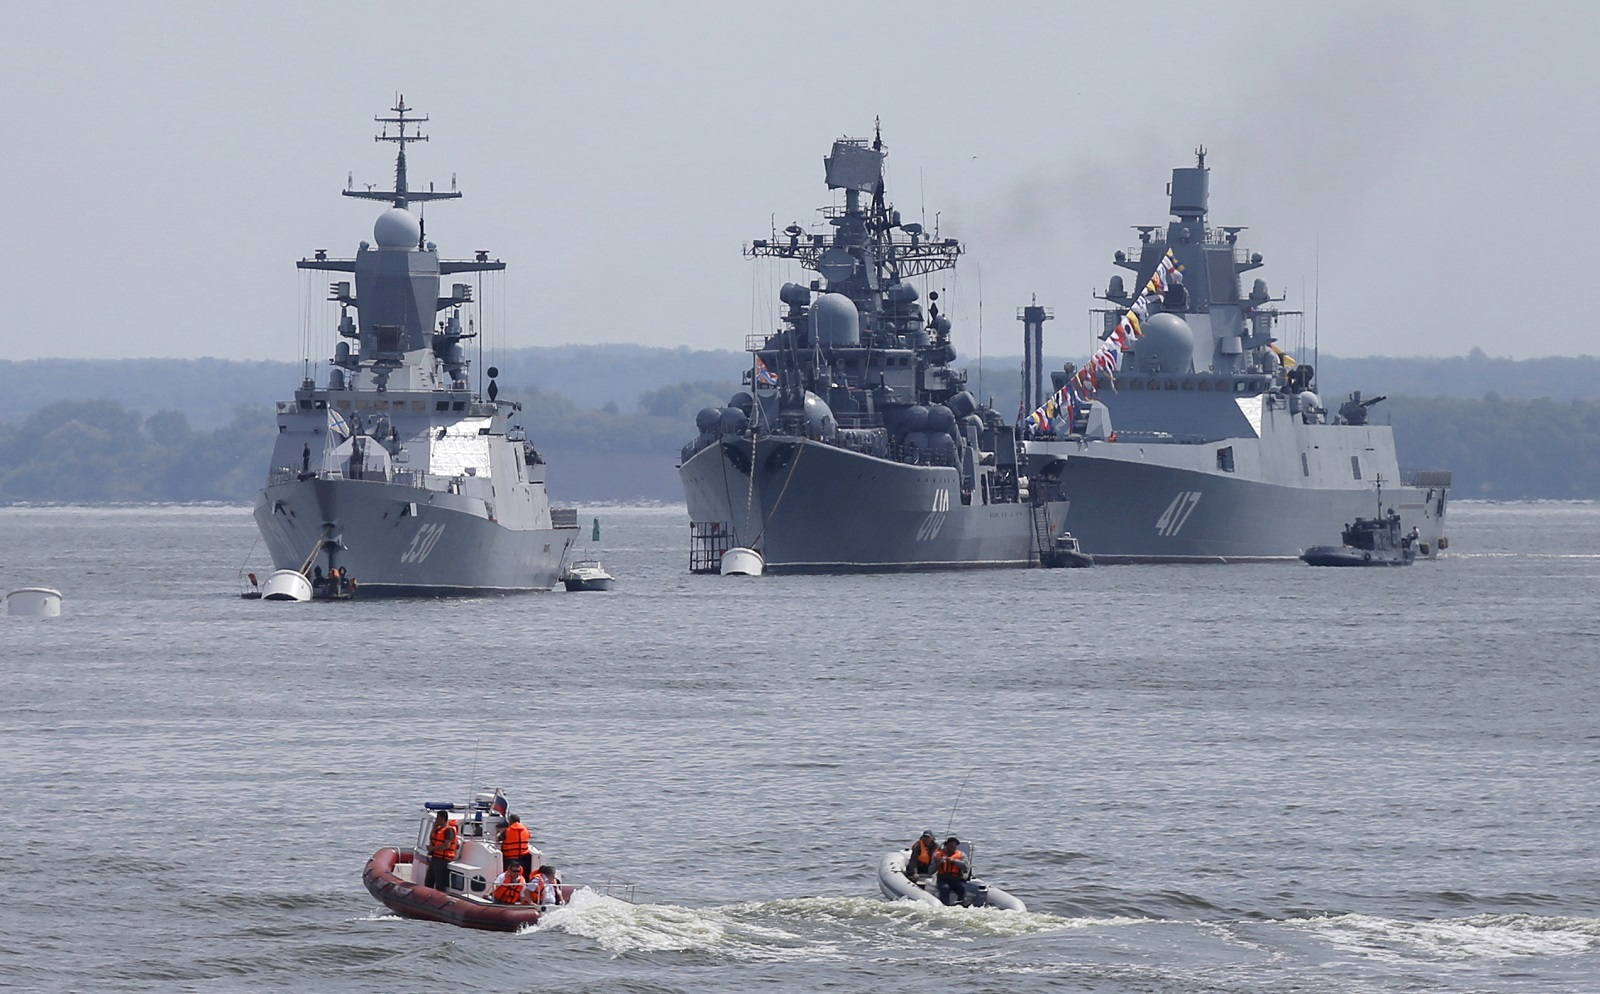 Russia's Aircraft Carrier Has a Big Problem (As in a Very Real Black